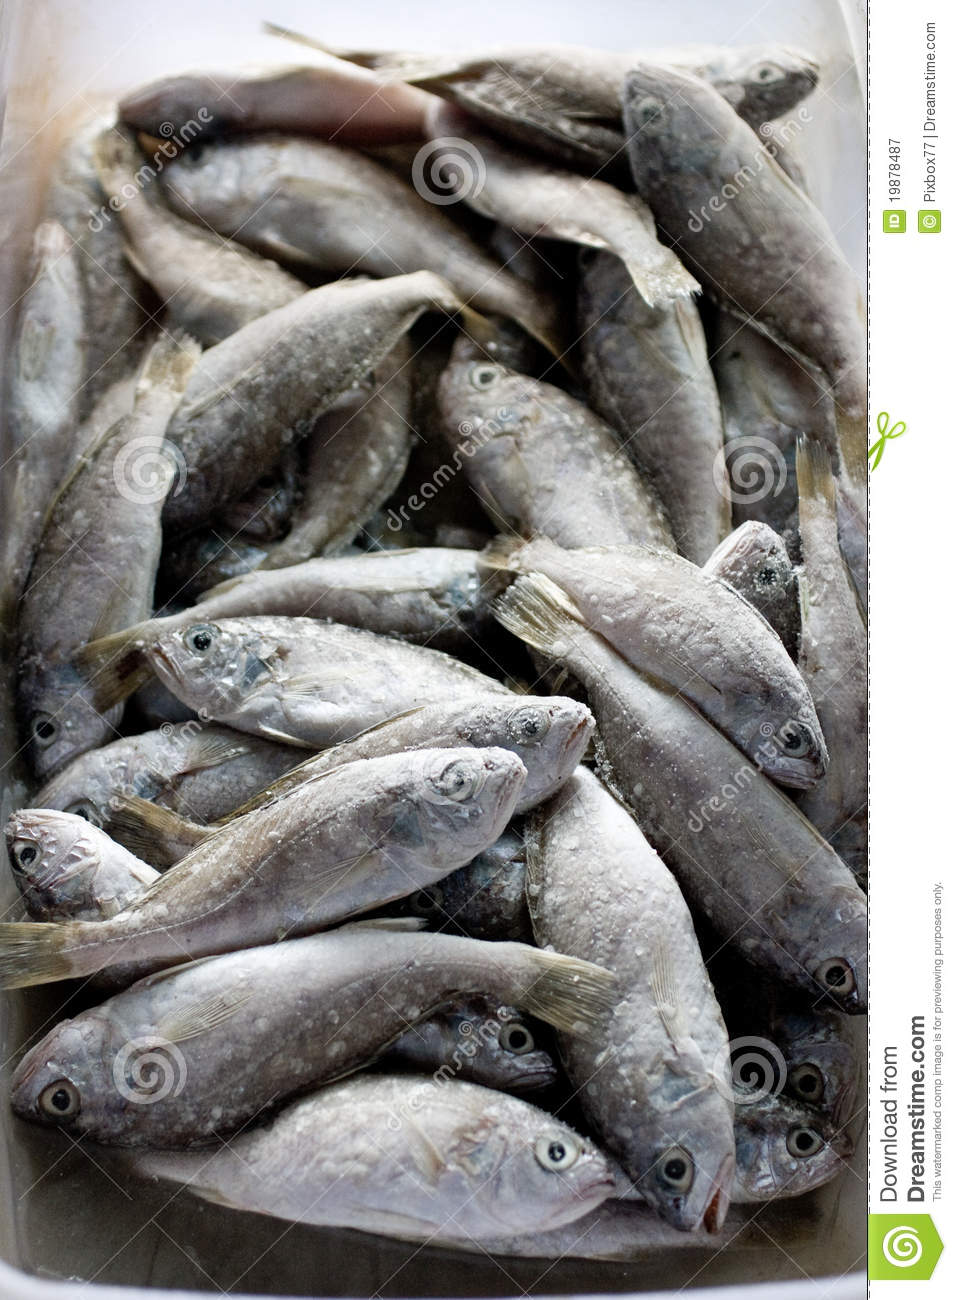 Frozen fish royalty free stock photography image 19878487 for Frozen fish food